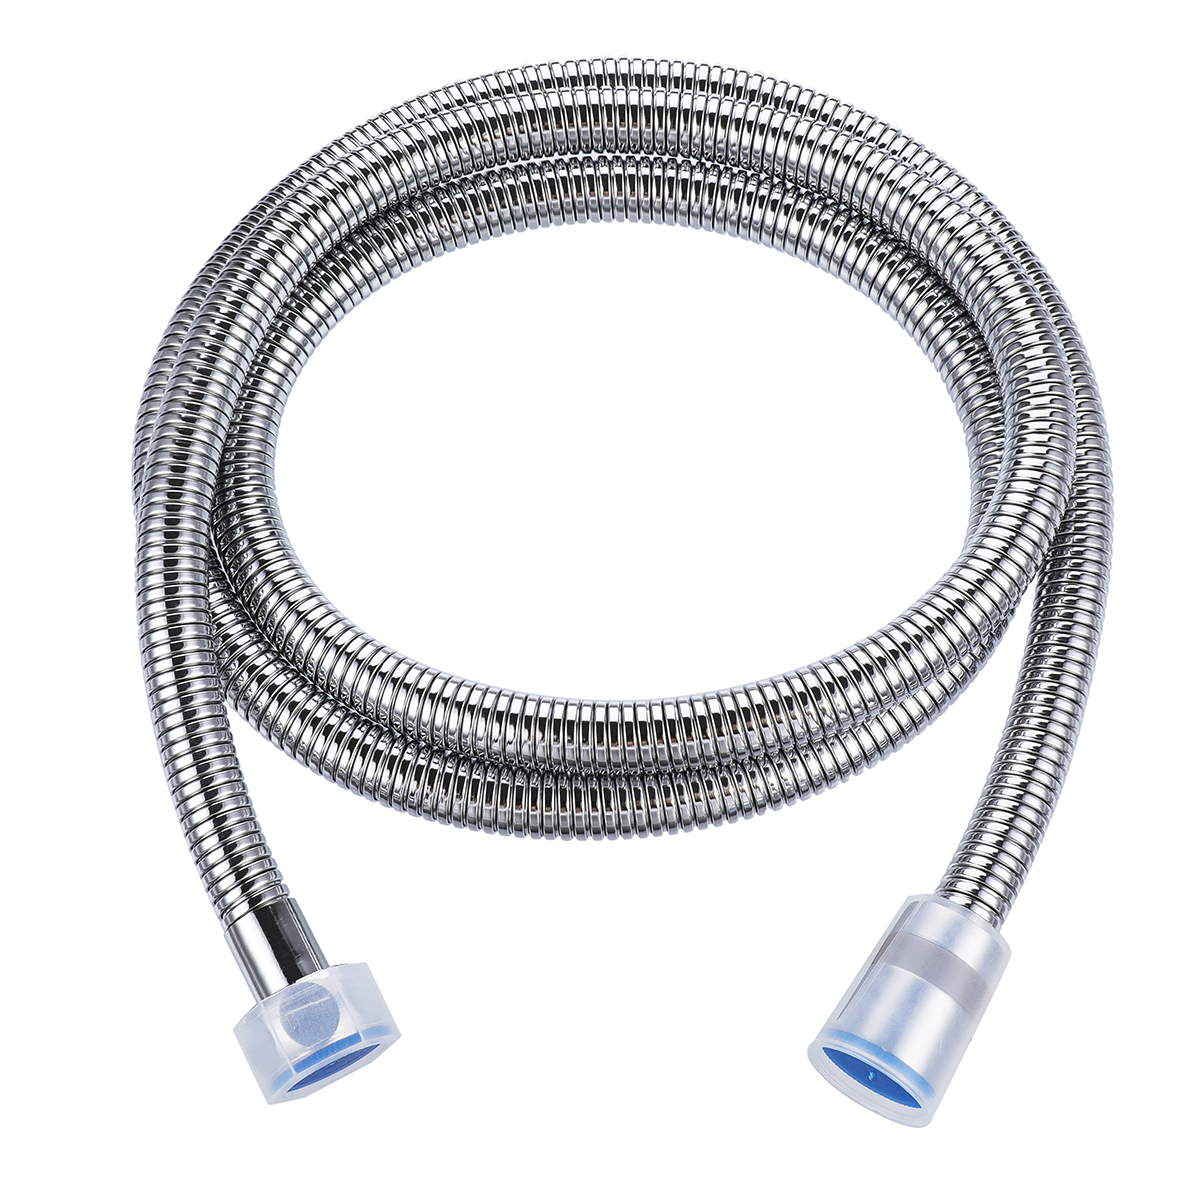 1.5m Flexible Handheld Shower Head Hose Dense Structure Stainless Steel 360° Rotatable Connector